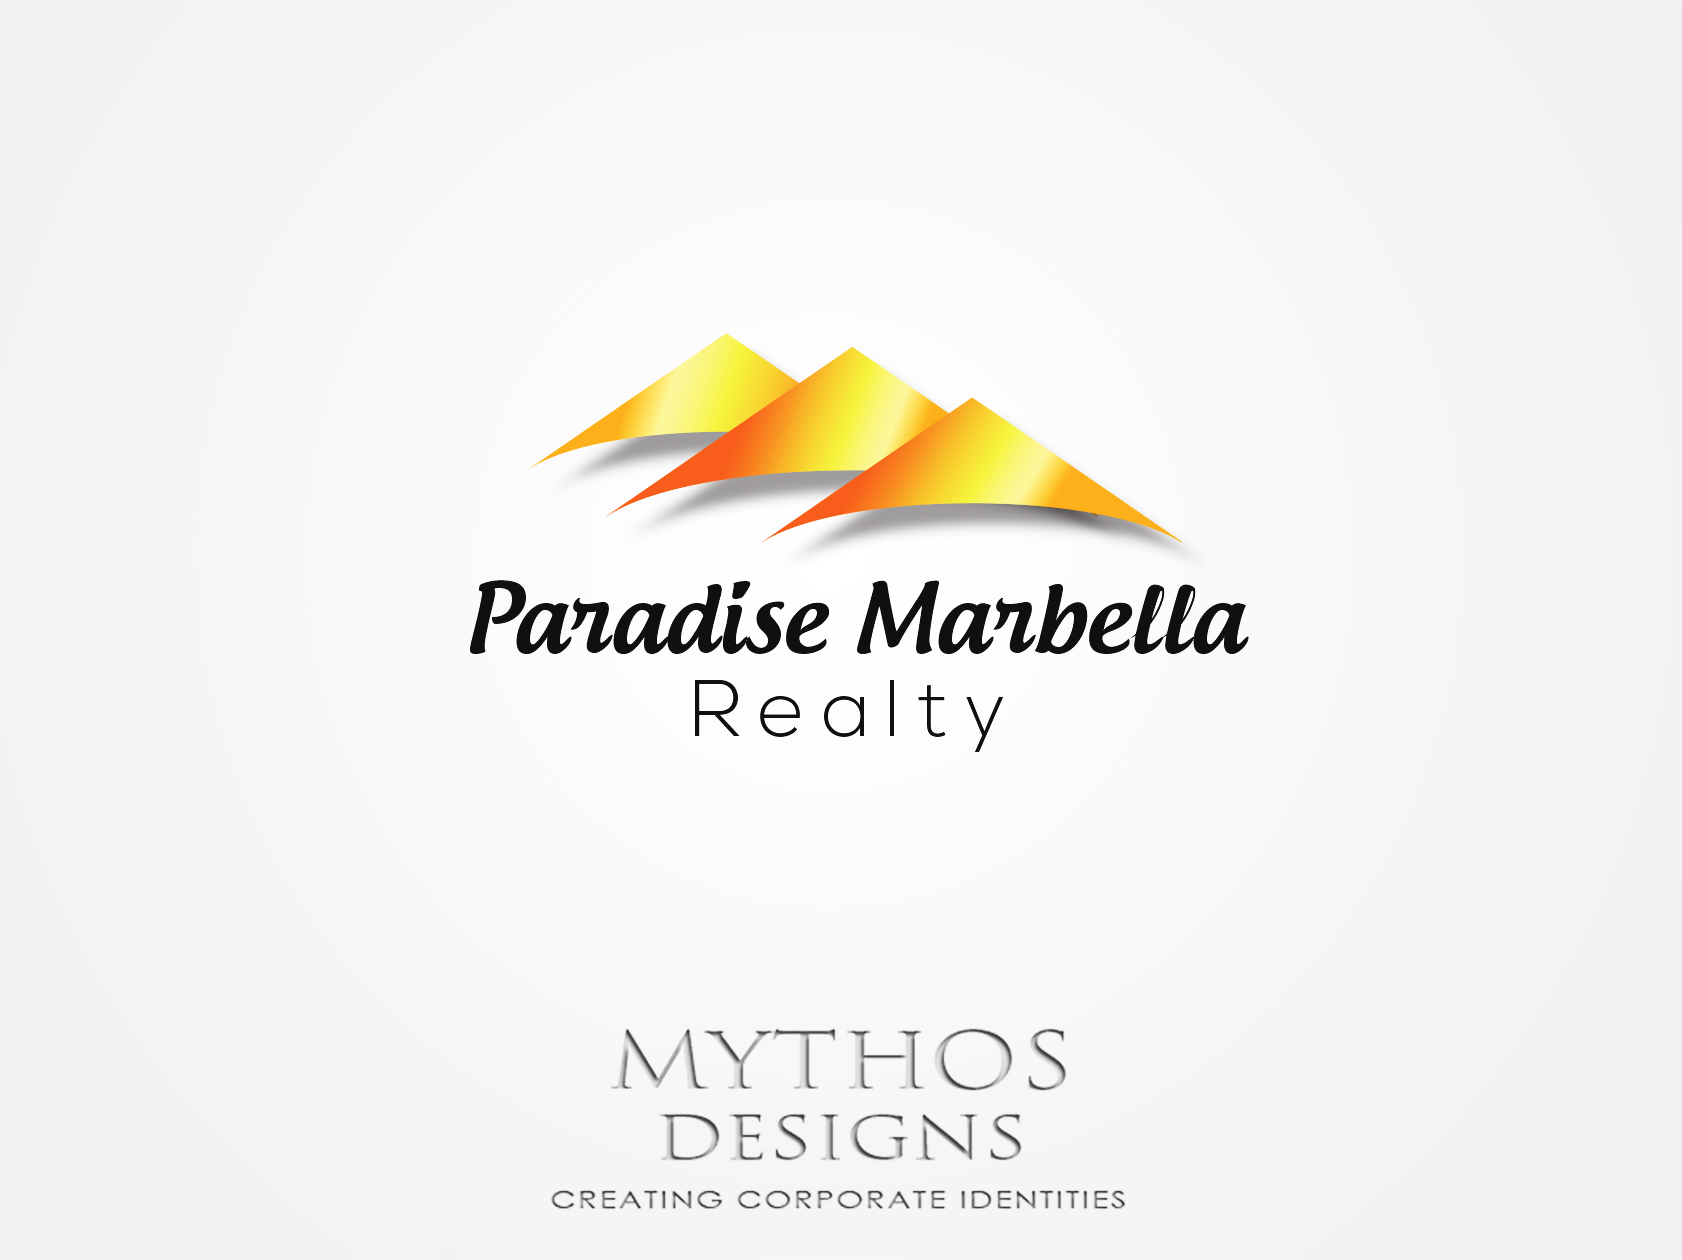 Logo Design by Mythos Designs - Entry No. 44 in the Logo Design Contest Captivating Logo Design for Paradise Marbella Realty.